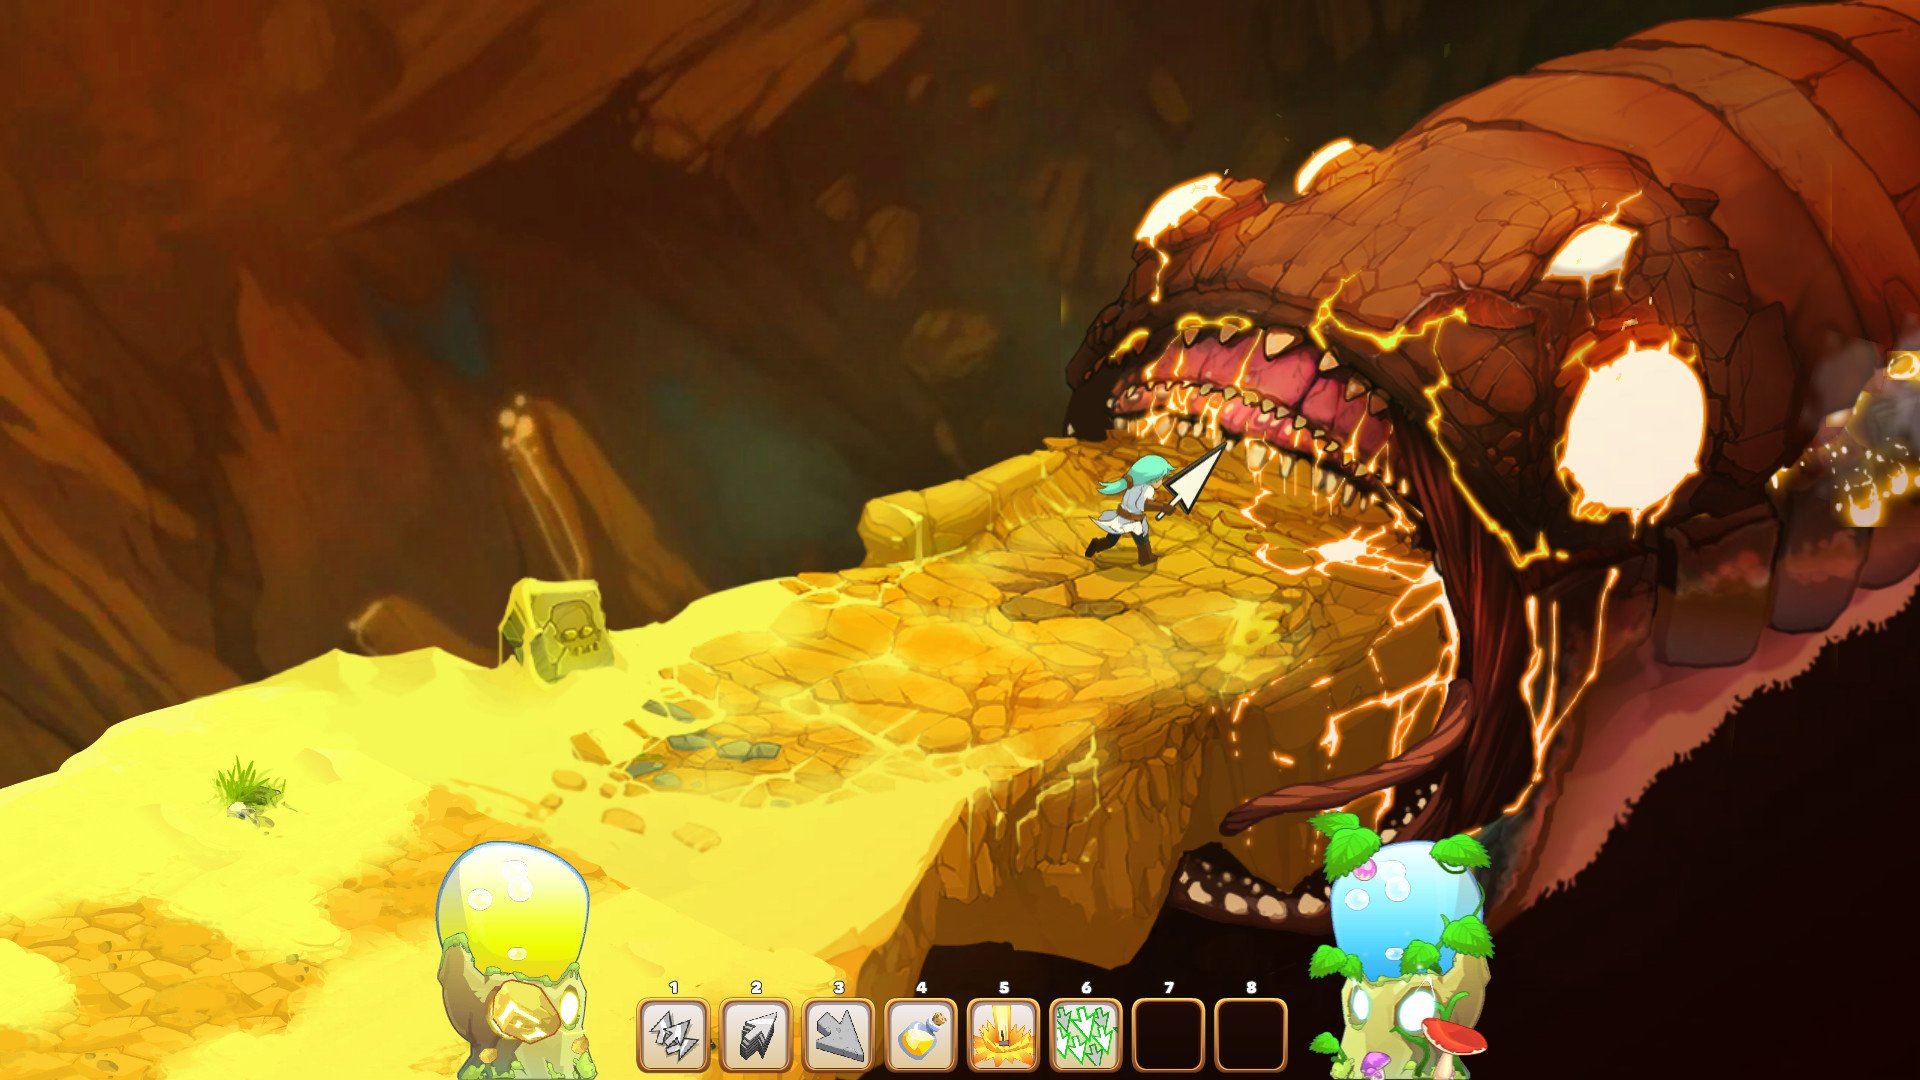 There's going to be a Clicker Heroes 2 screenshot